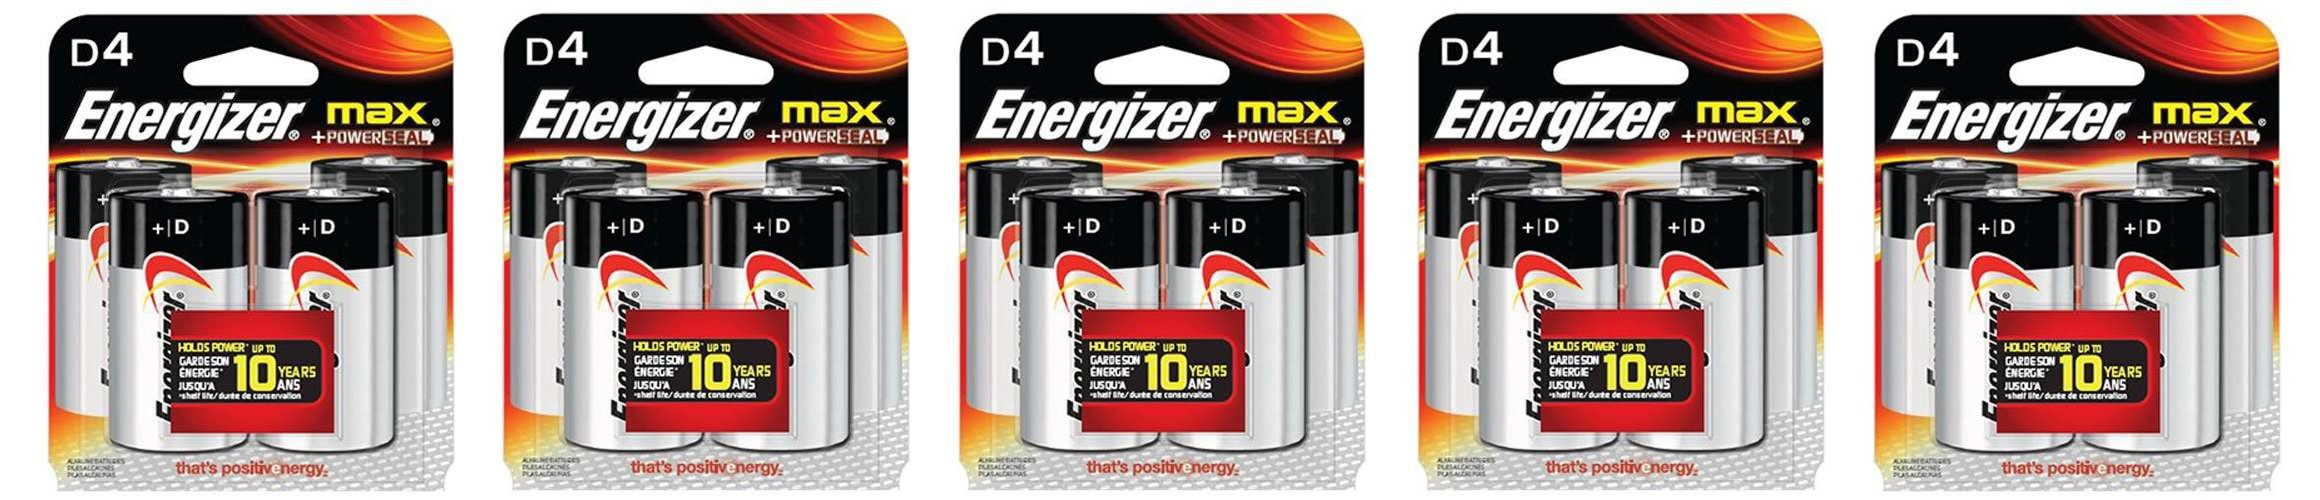 Energizer MAX D tAhUqn Alkaline Batteries, 4 Count, 5 Pack by Energizer